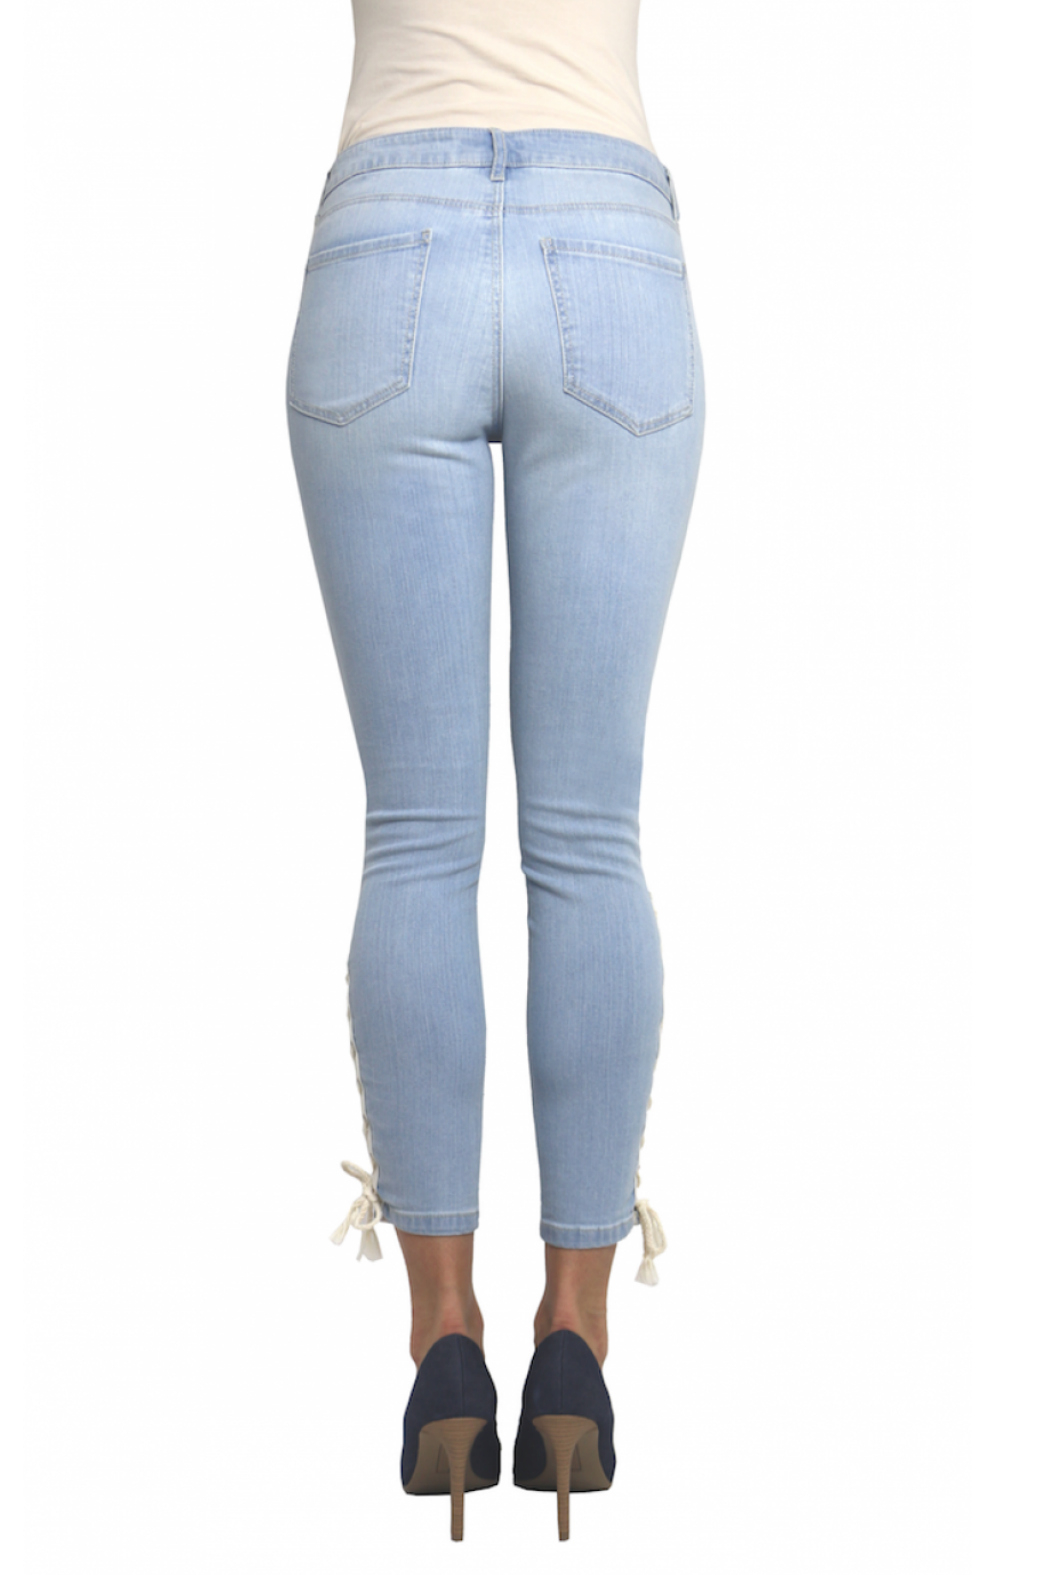 Tractr Ankle Crop Lace Up Hem Jean - Side Cropped Image